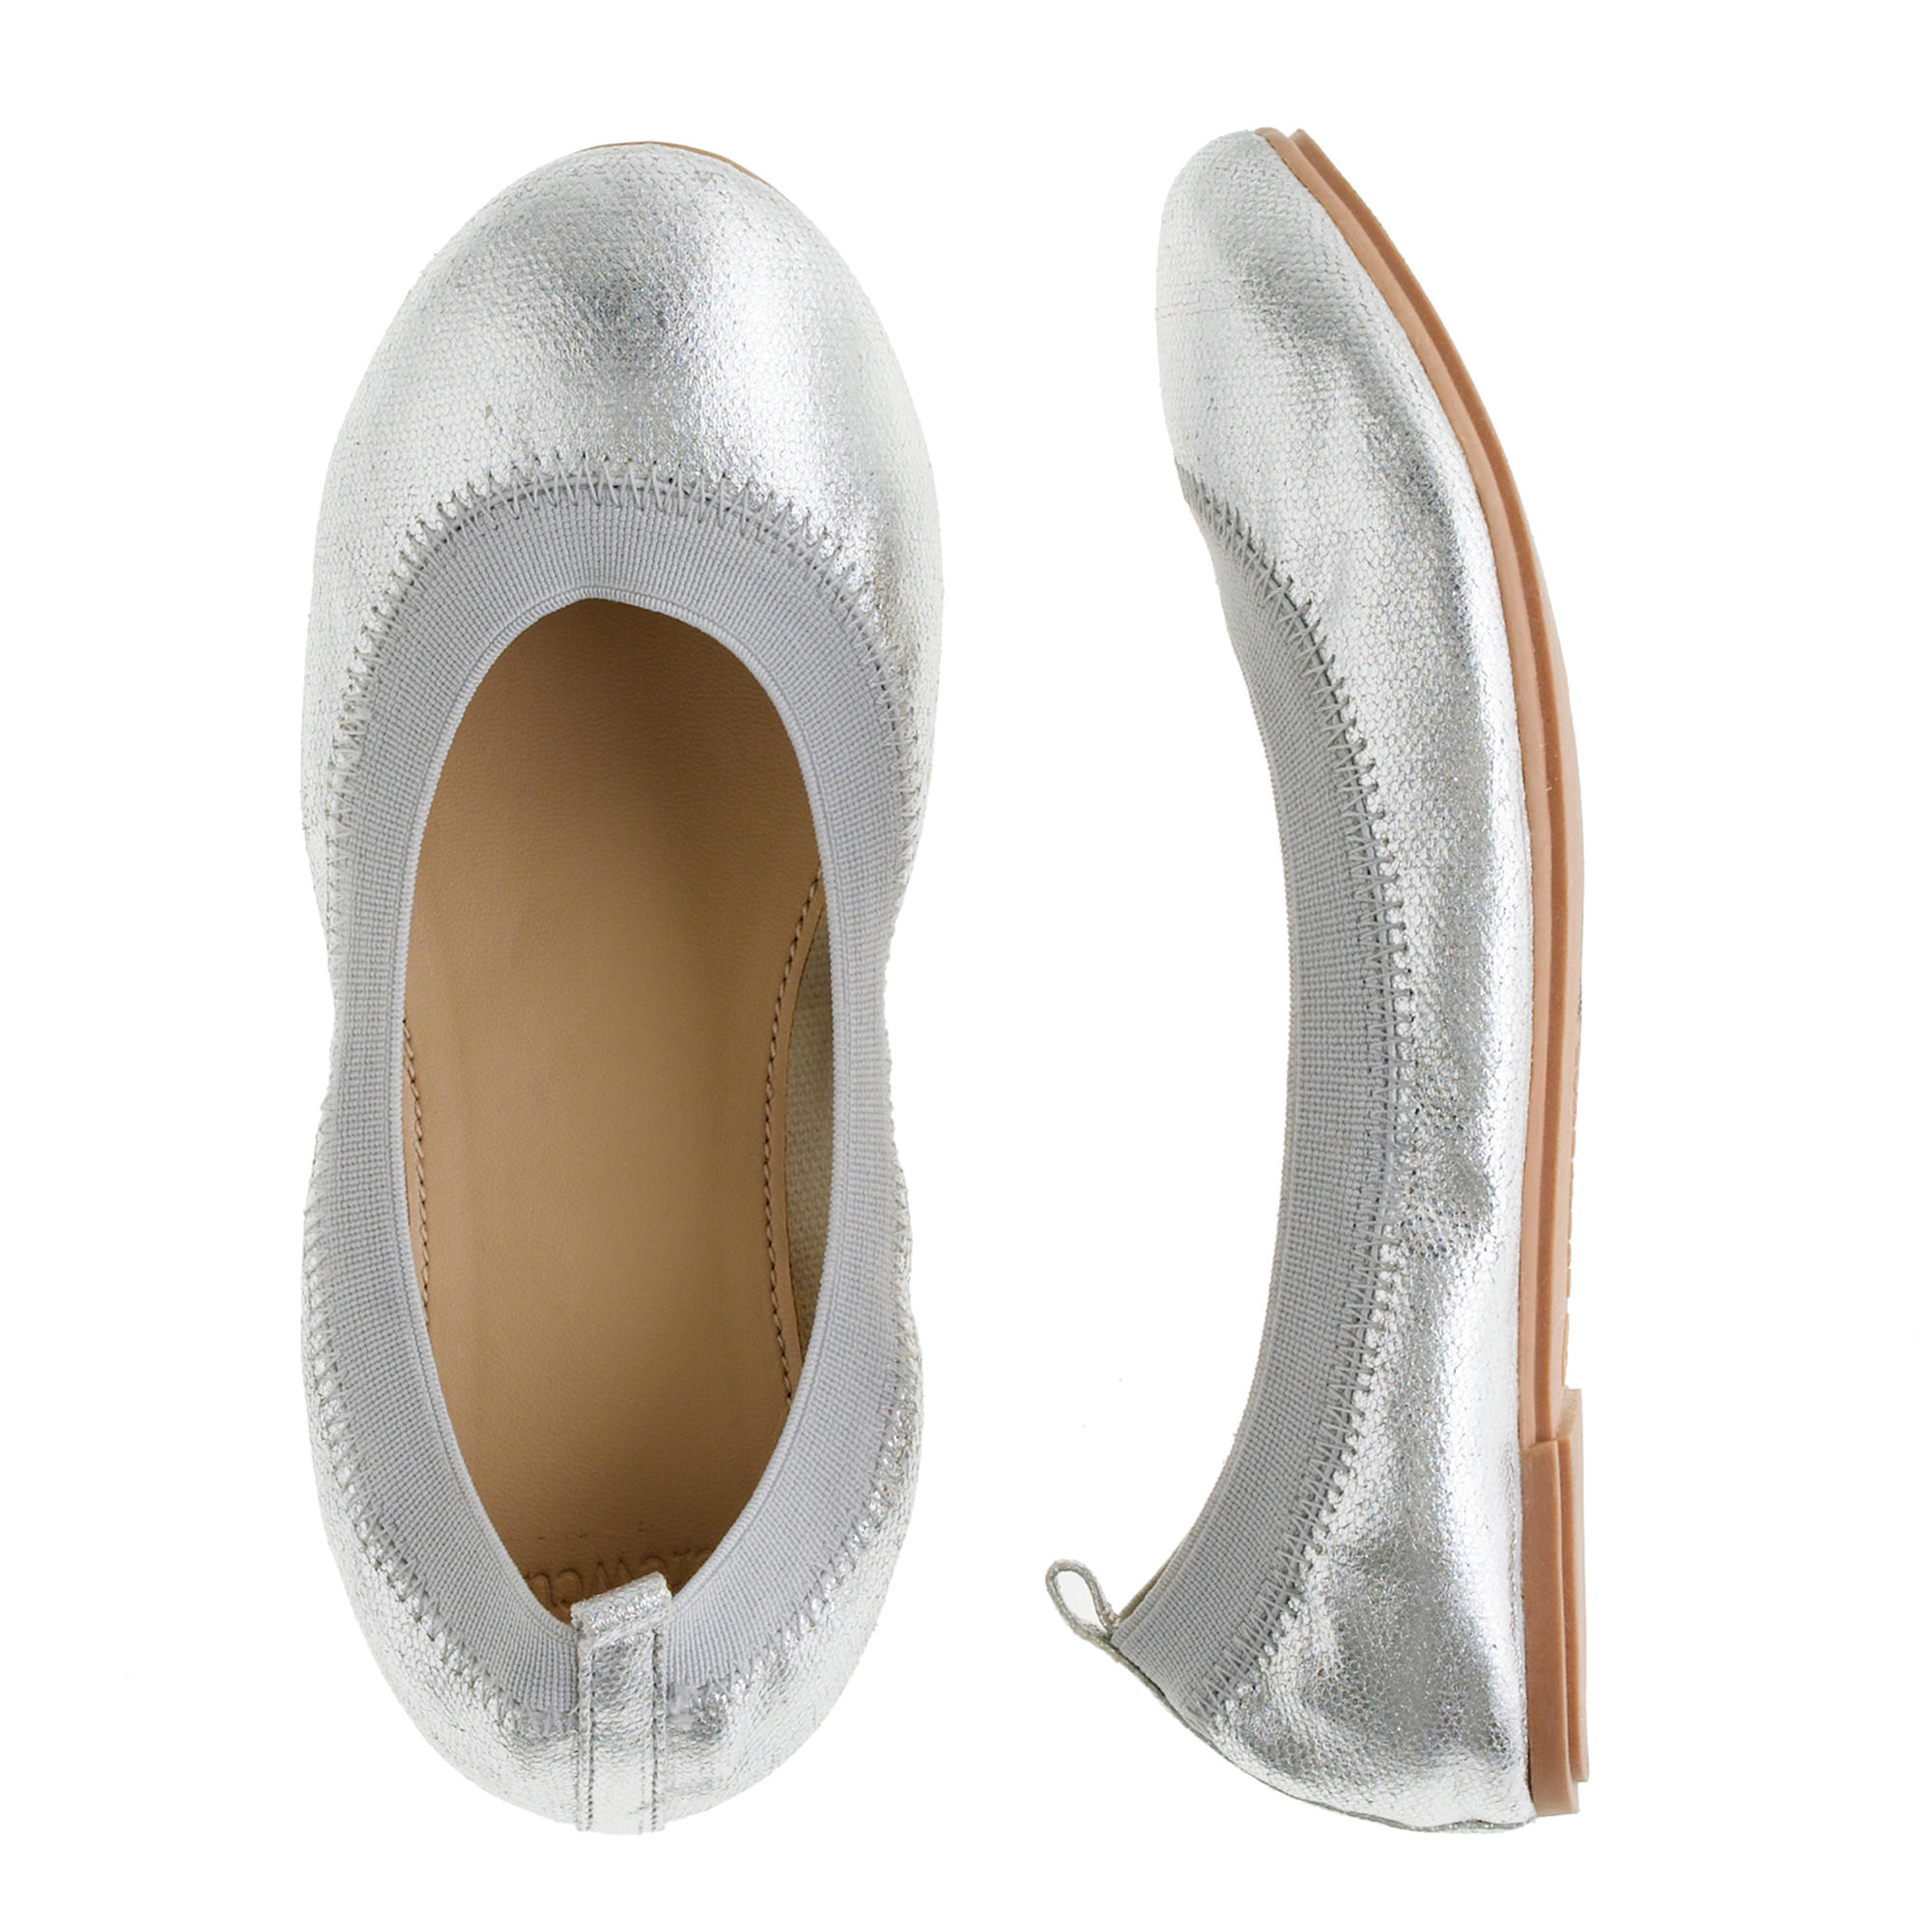 If fashion forward is her goal, check out these cute flats for girls from The Children's Place. Shop the PLACE where big fashion meets little prices!